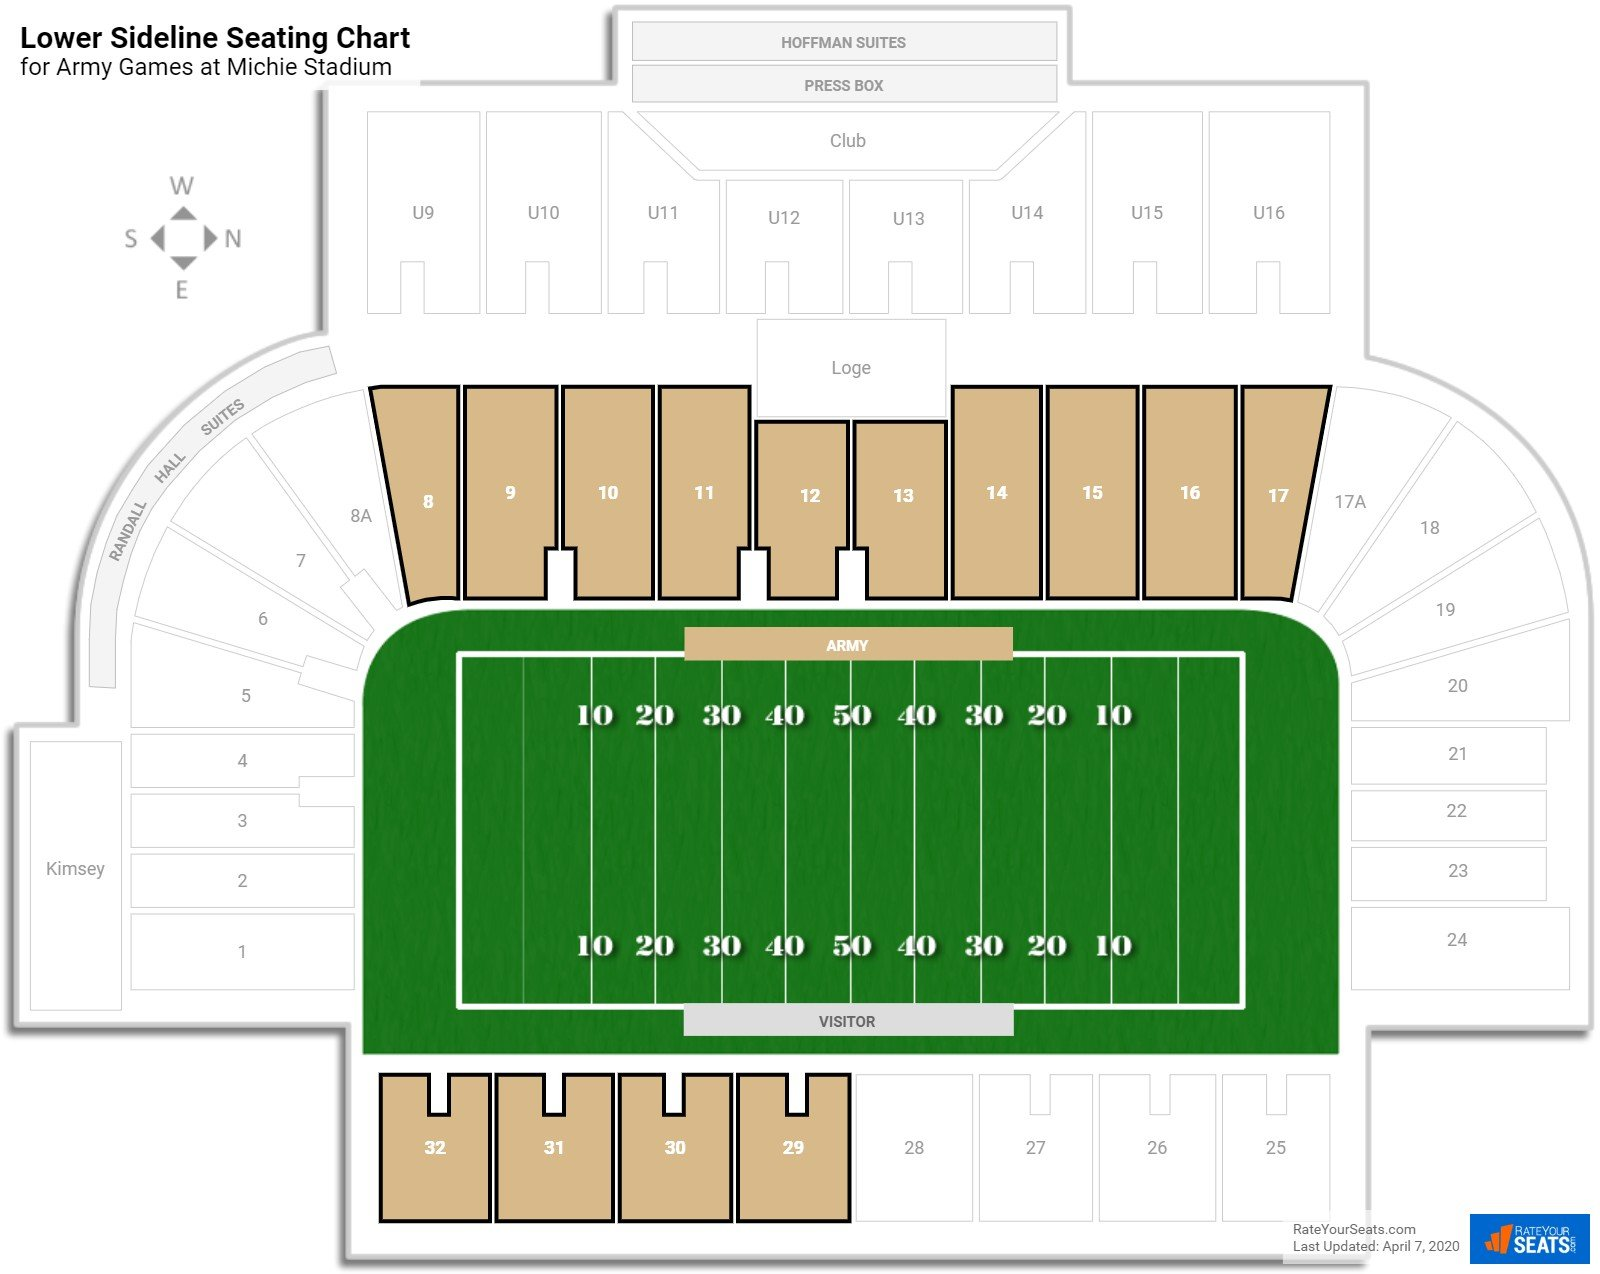 Michie Stadium Lower Sideline Seating Chart